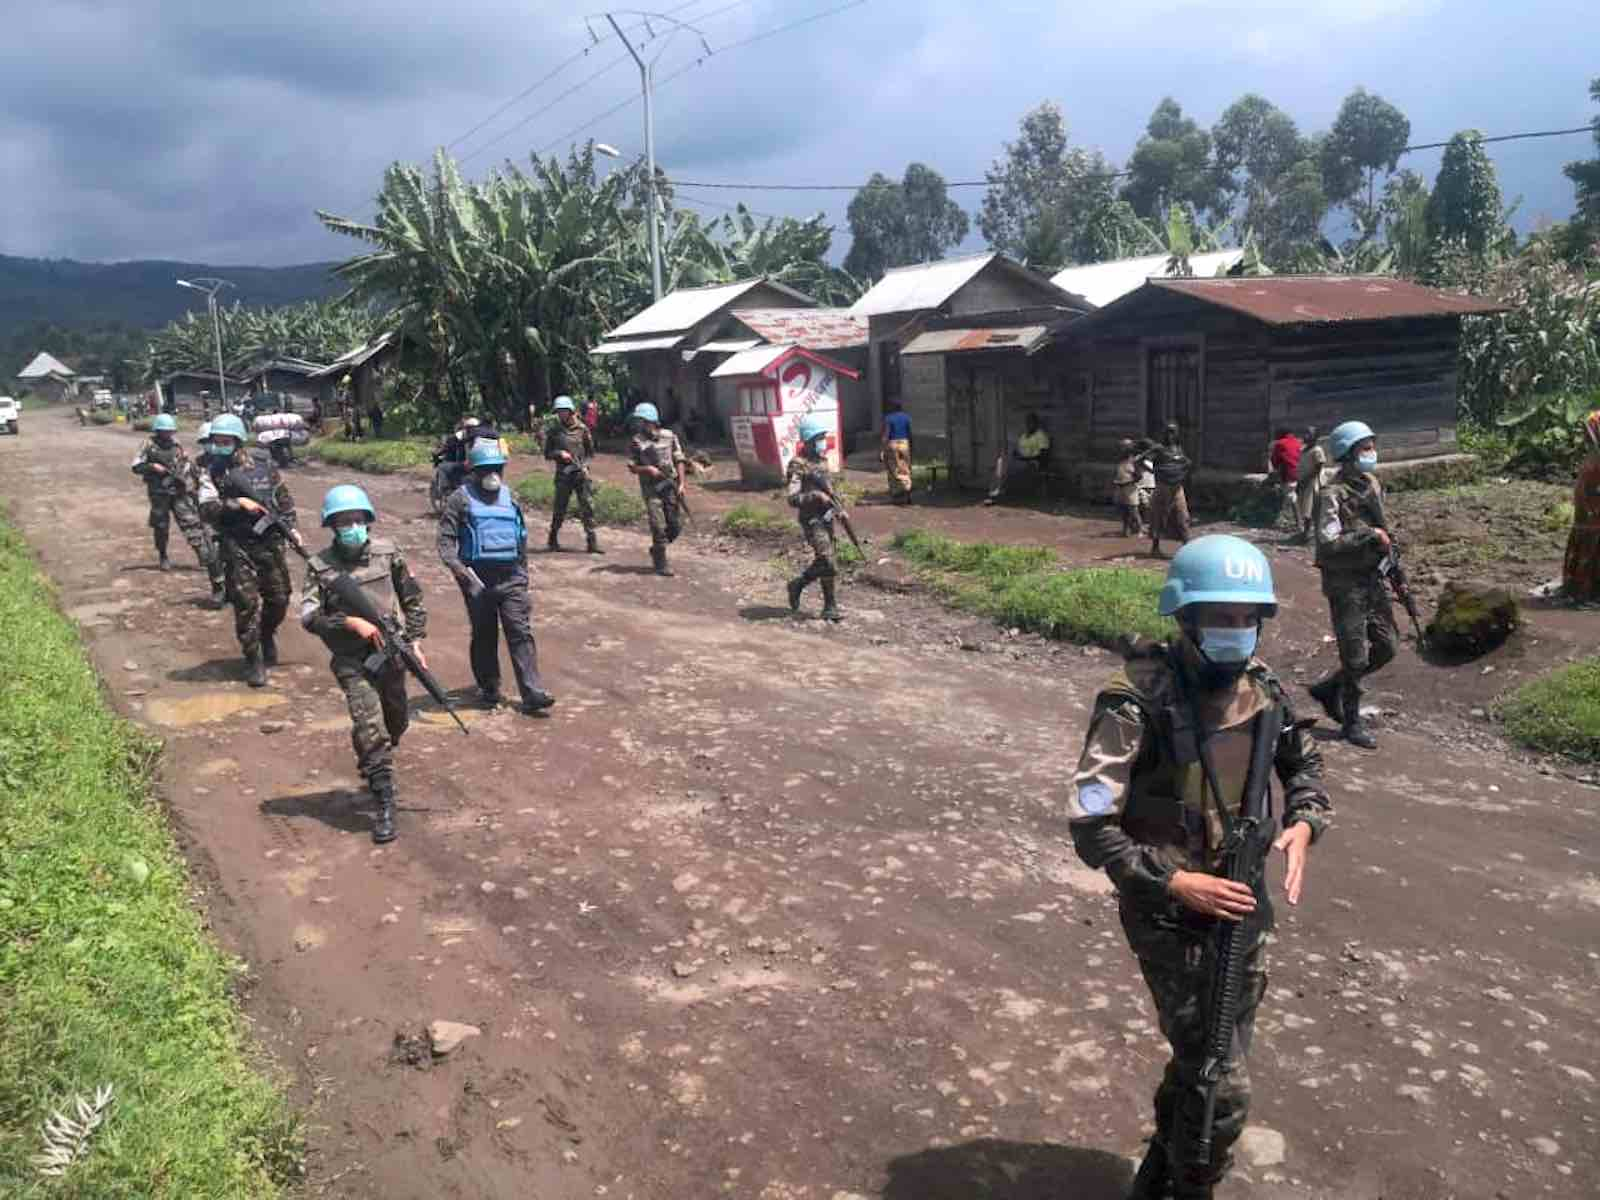 UN Peacekeepers from Morocco patrol a village in North Kivu province, Democratic Republlic of Congo, 9 May 2020 (MONUSCO Photos/Flickr)